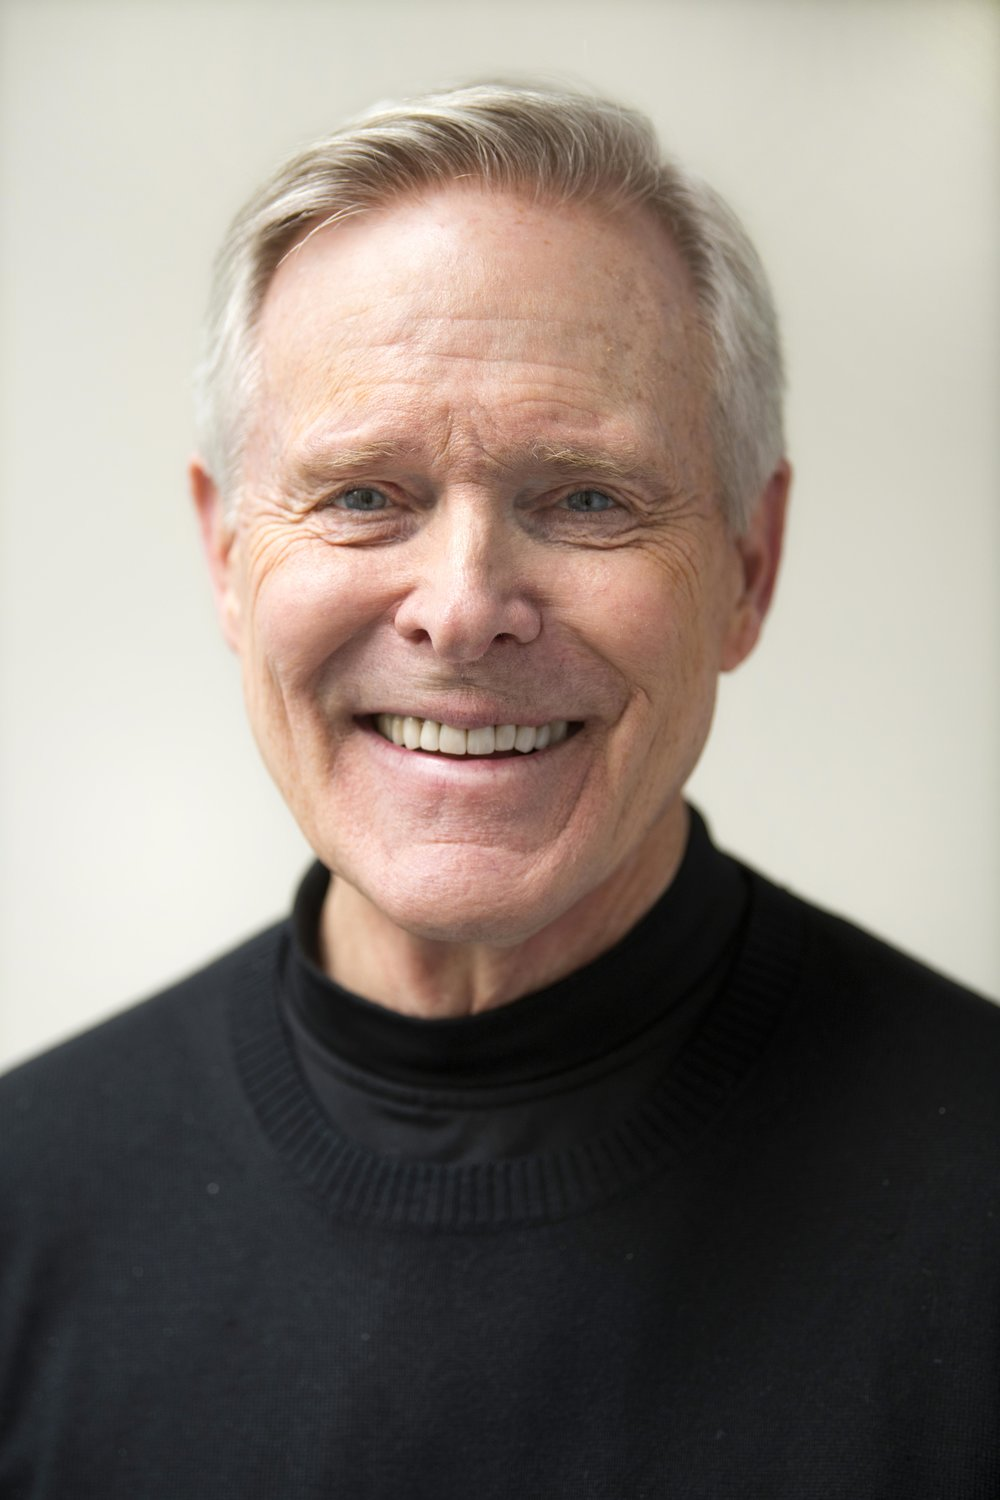 Ray Mabus - Ray Mabus has been a change leader in executive positions at the state, federal and international levels and in the private sector as Secretary of the Navy, Ambassador to Saudi Arabia, Governor of Mississippi and CEO of Foamex, a major manufacturer.See Full BioConnect on Twitter